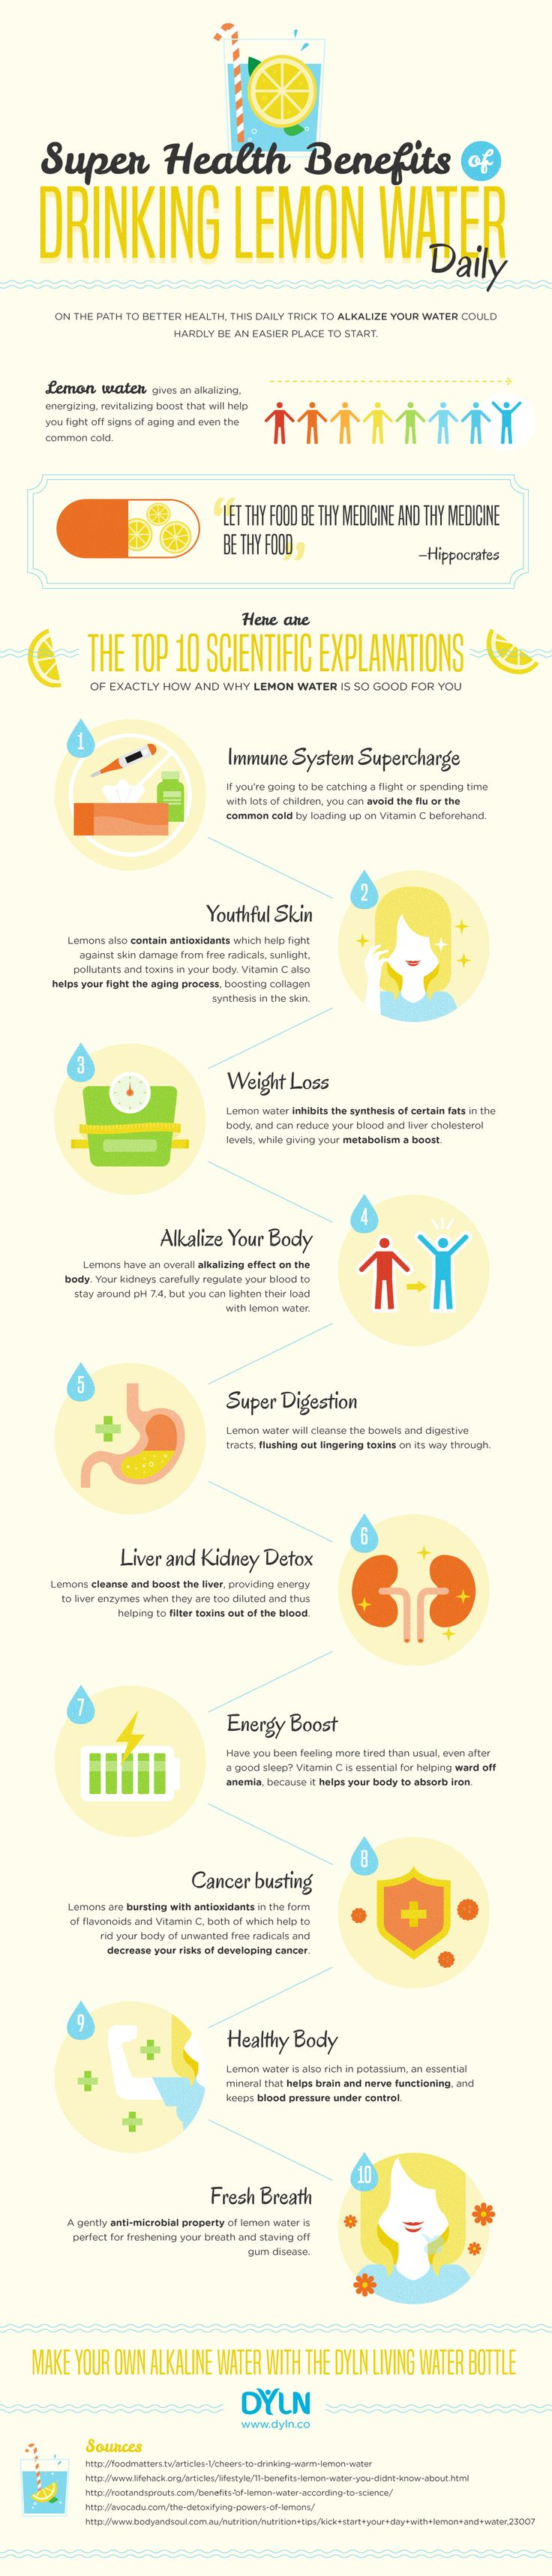 Health Benefits of Lemon Water. http://www.dyln.co/blogs/y-blog/84587779-super-health-benefits-of-drinking-lemon-water  healthy living, natural remedies.